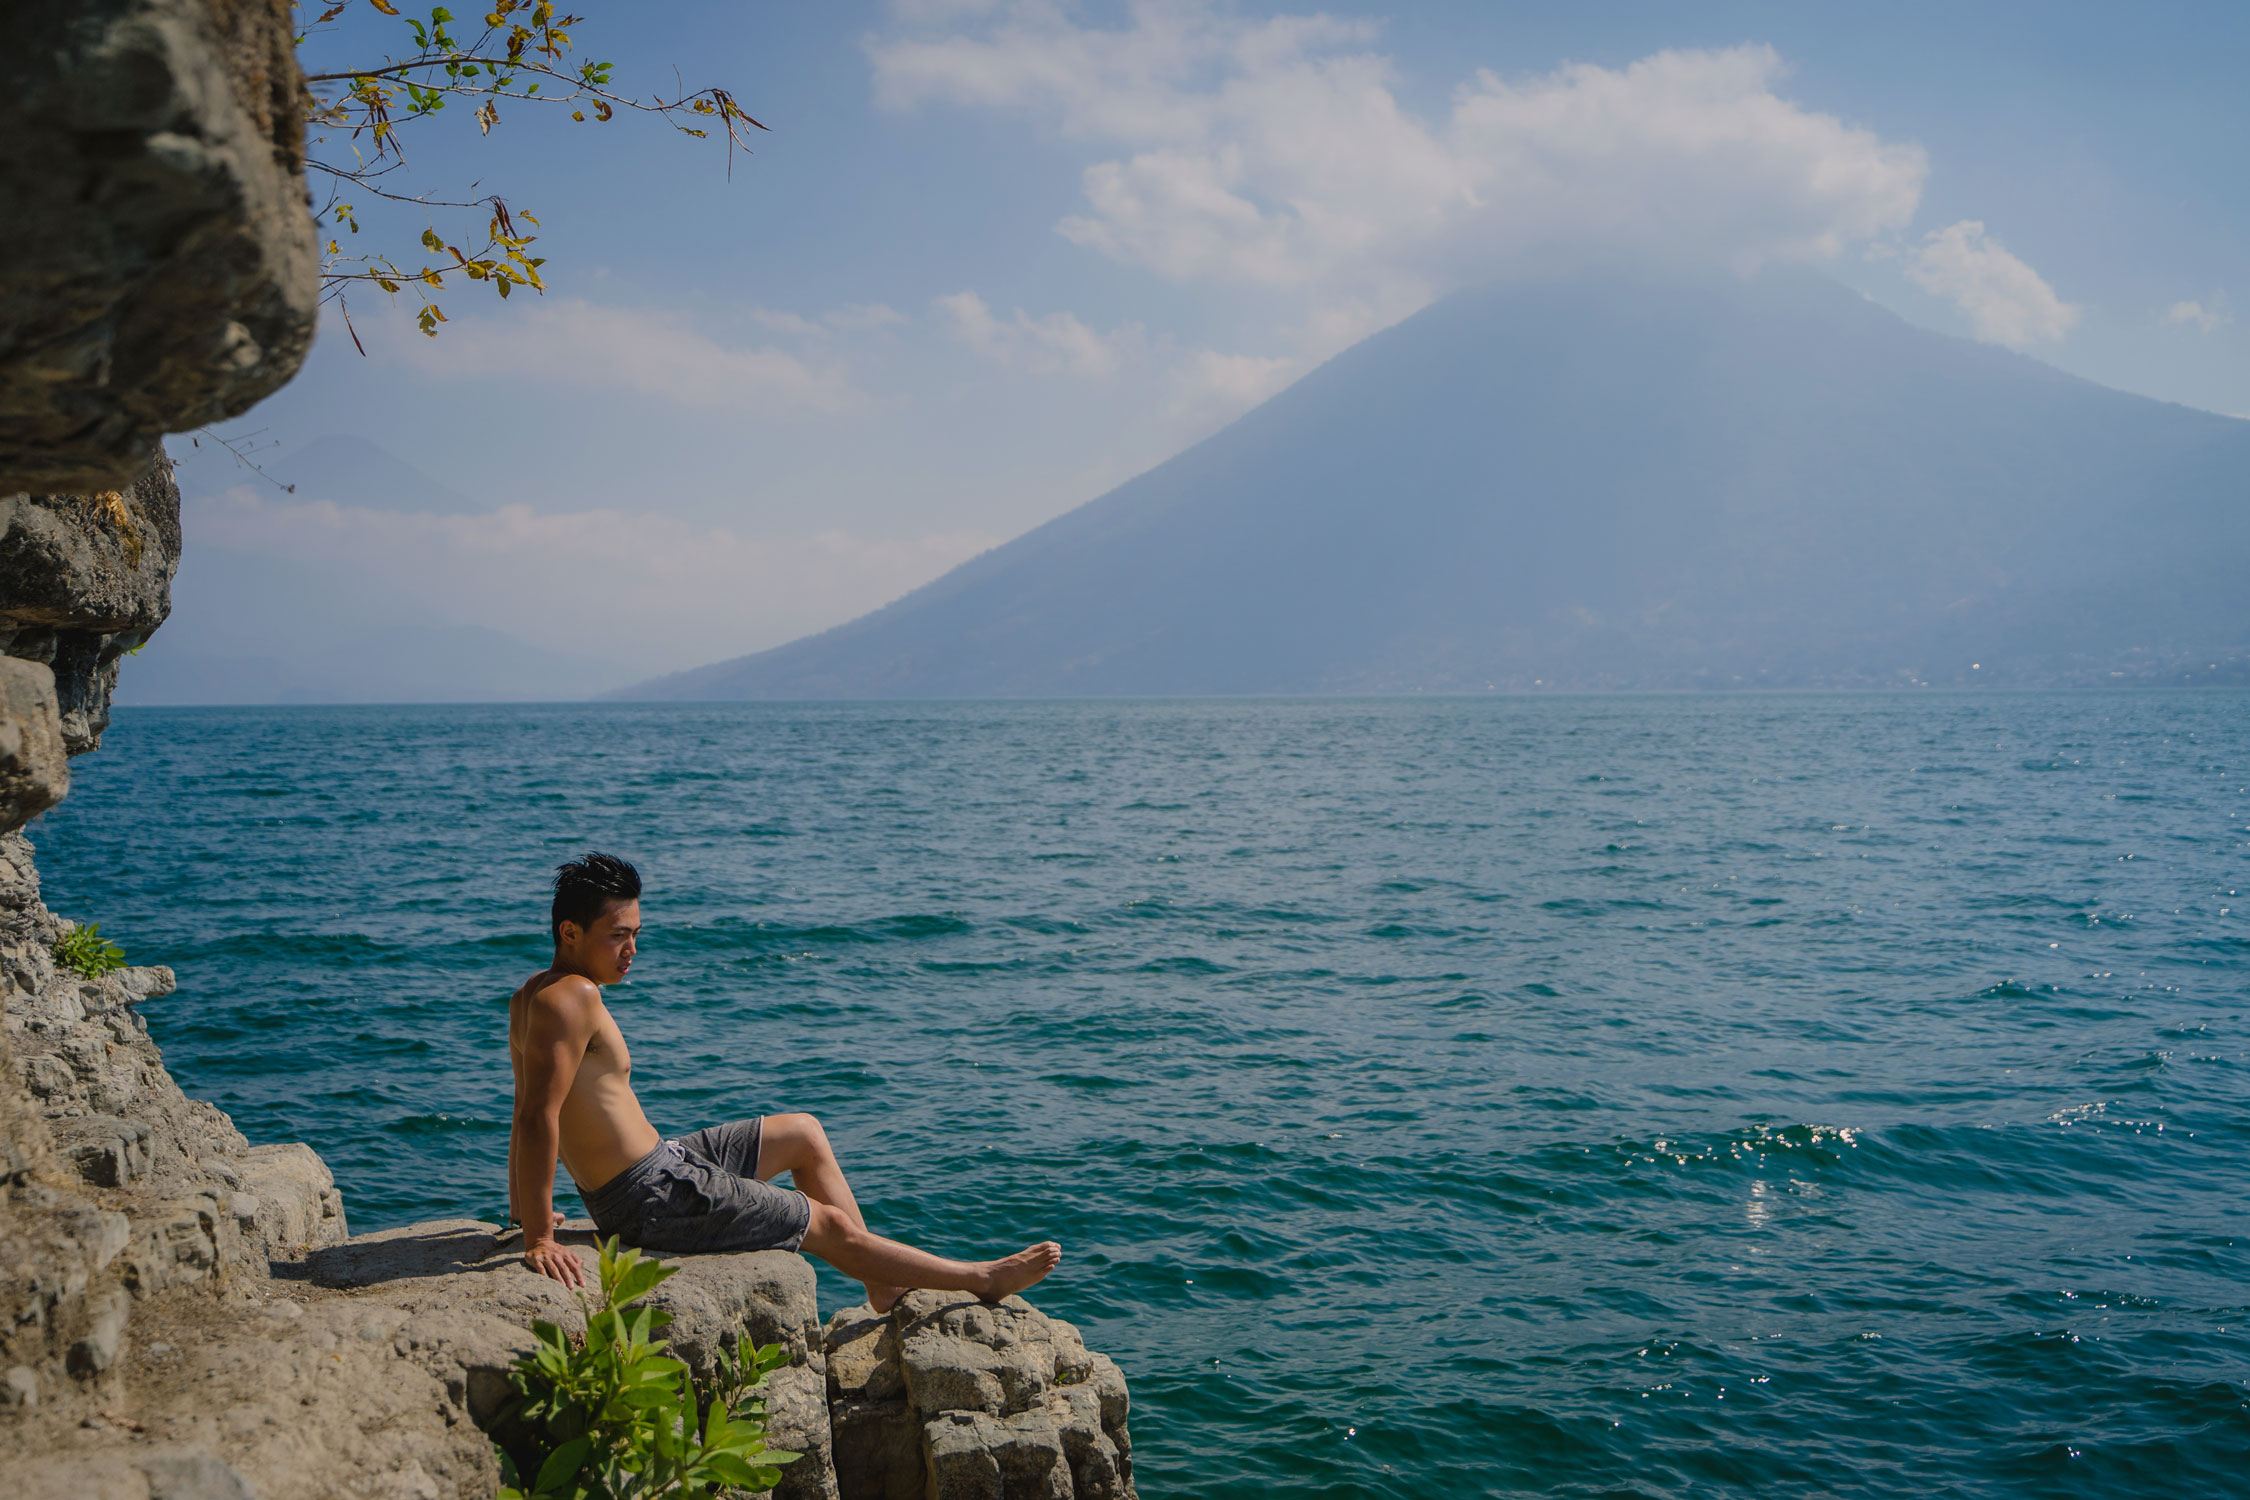 Lake Atitlan is one of the most beautiful places in Guatemala. Here are 10+ amazing Guatemala experiences - the best things to do in Guatemala, all in one place!